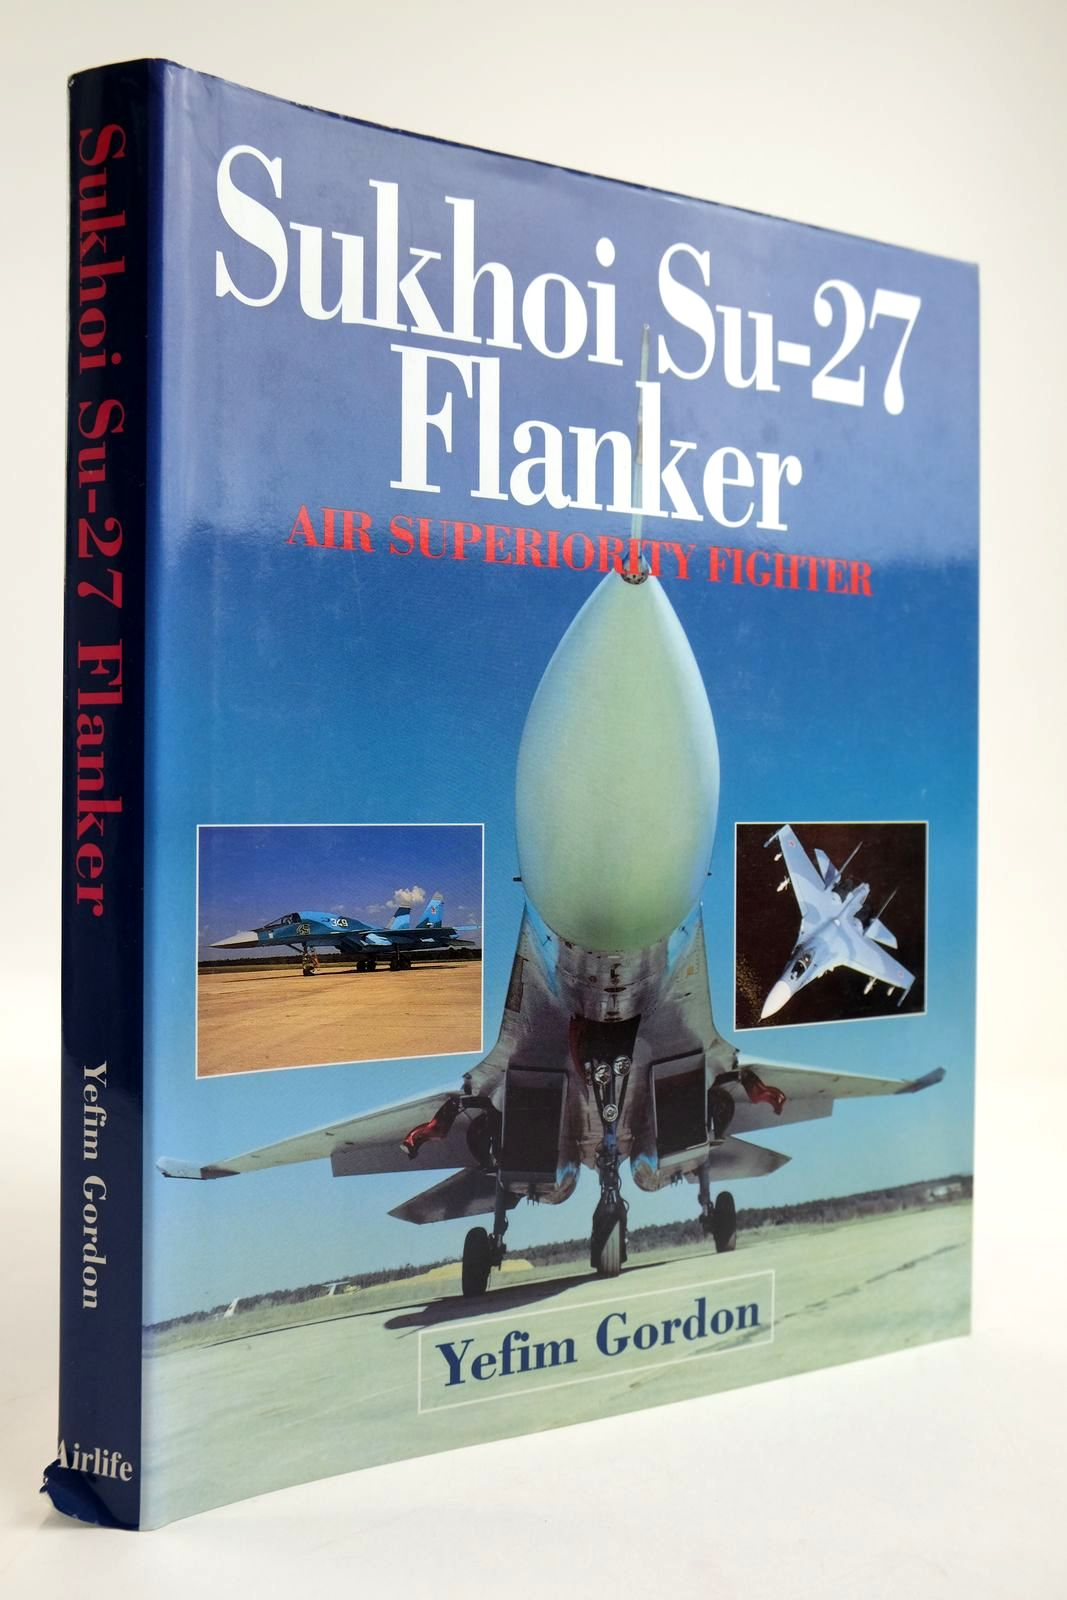 Photo of SUKHOI SU-27 FLANKER AIR SUPERIORITY FIGHTER- Stock Number: 2133812